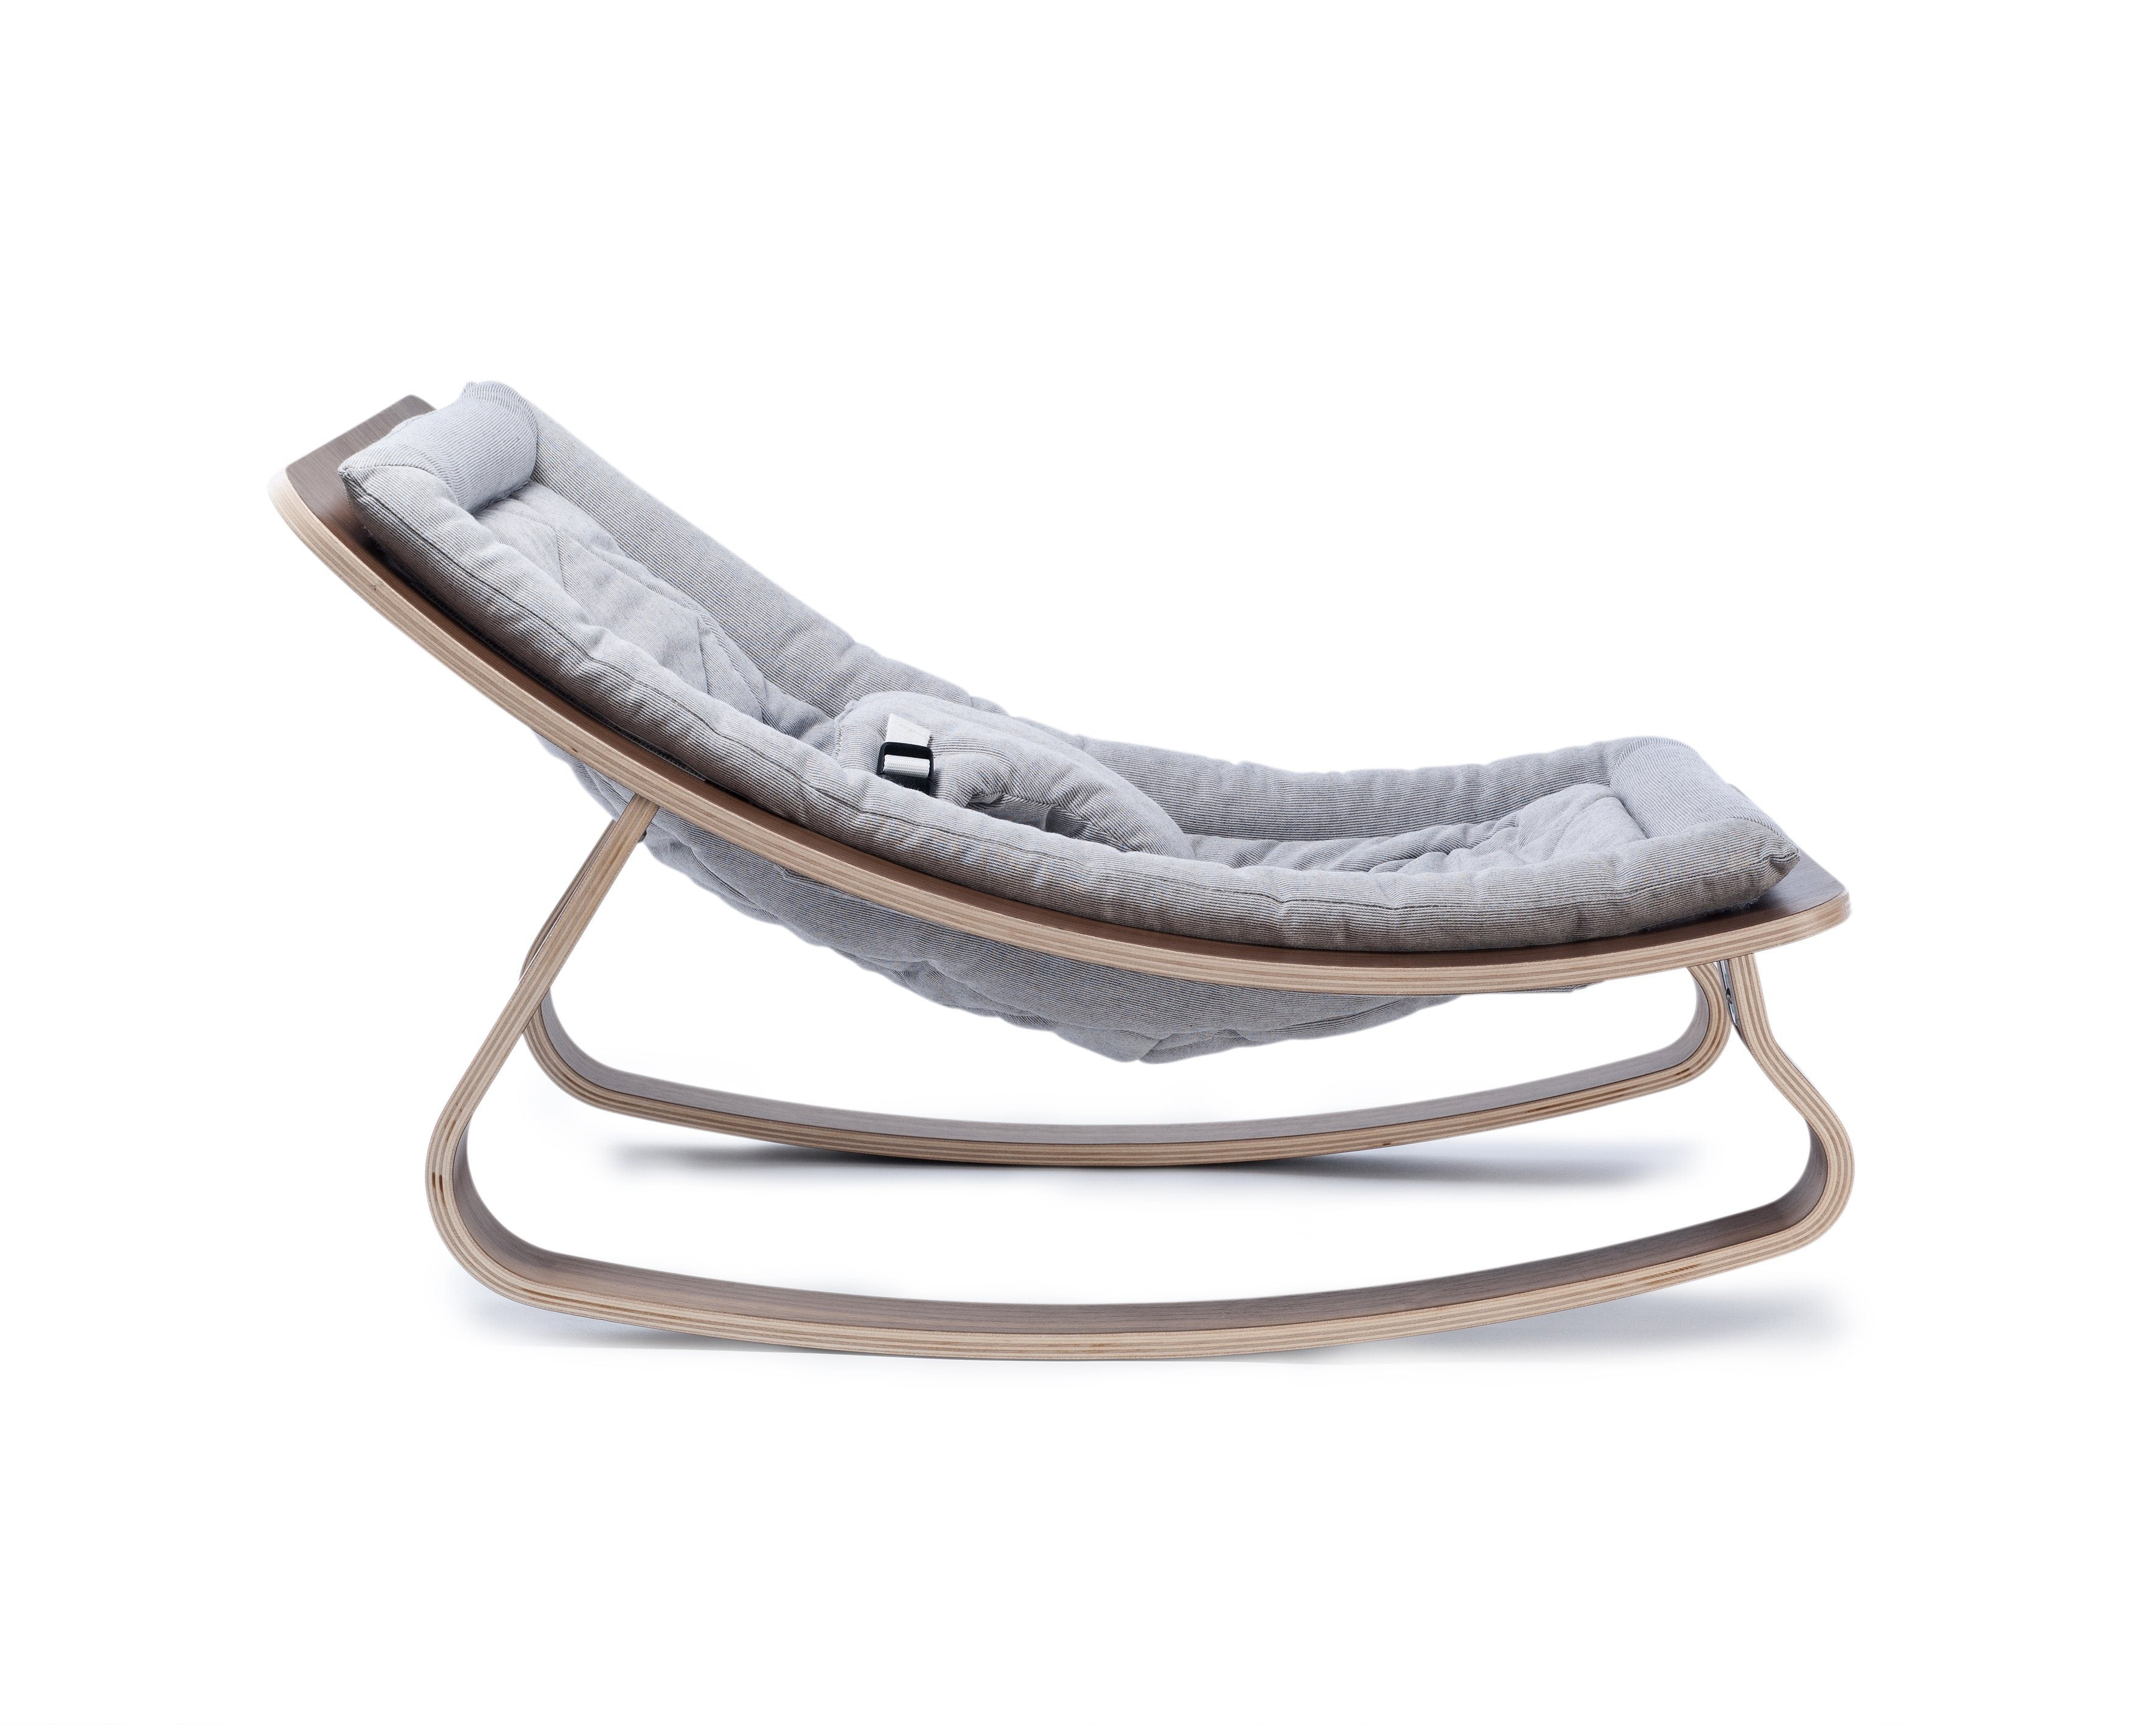 Charlie Crane LEVO Baby Rocker - Walnut with Sweet Gray - Project Nursery